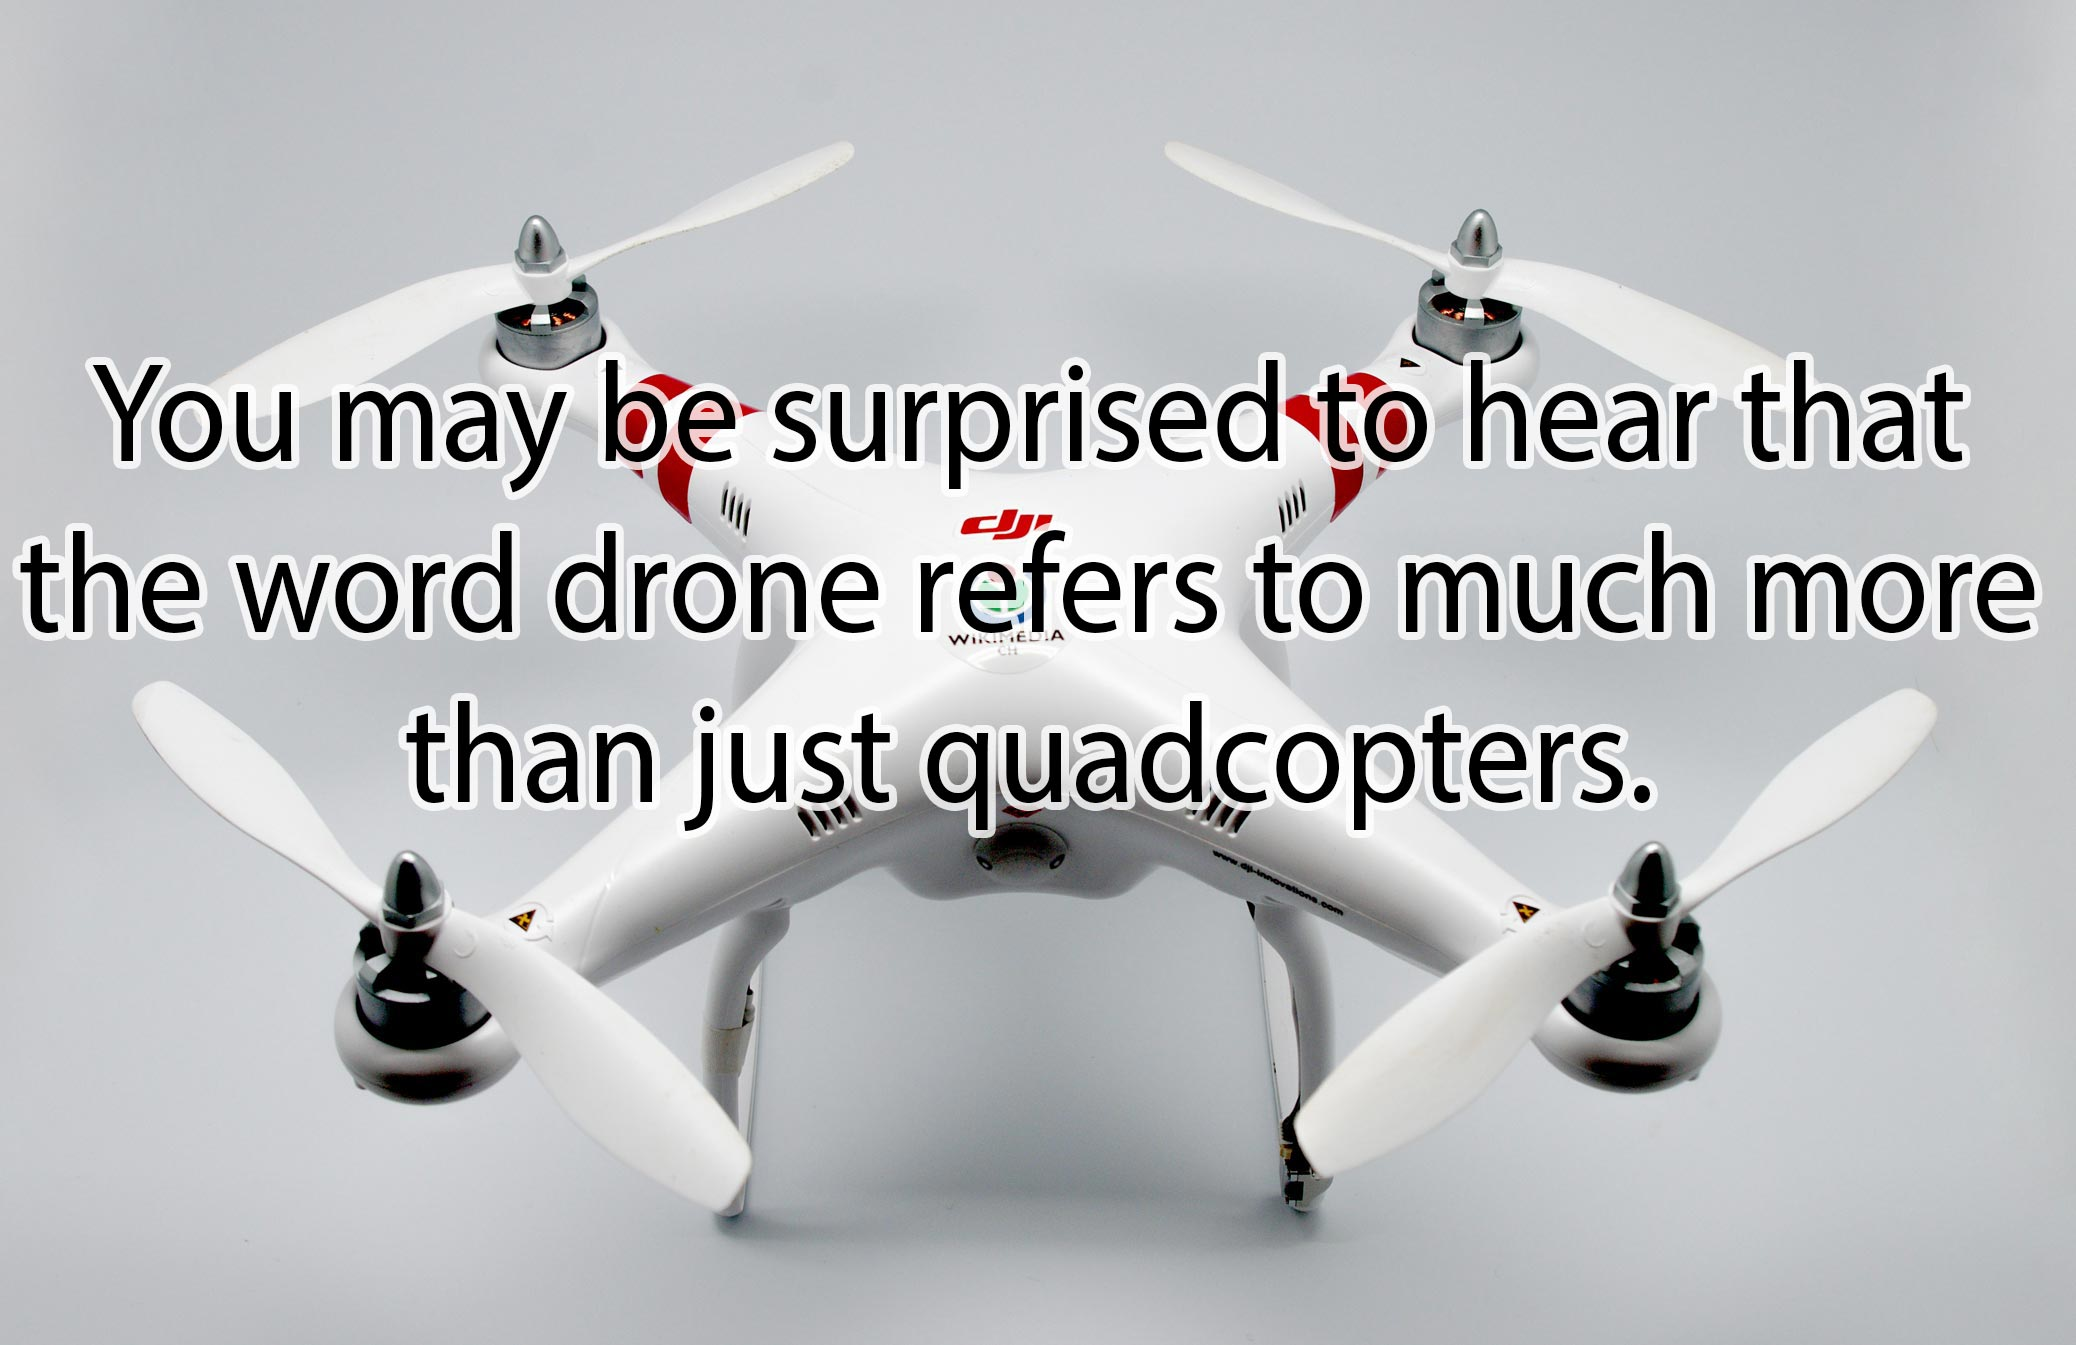 You may be surprised to hear that the word drone refers to much more than just quadcopters.